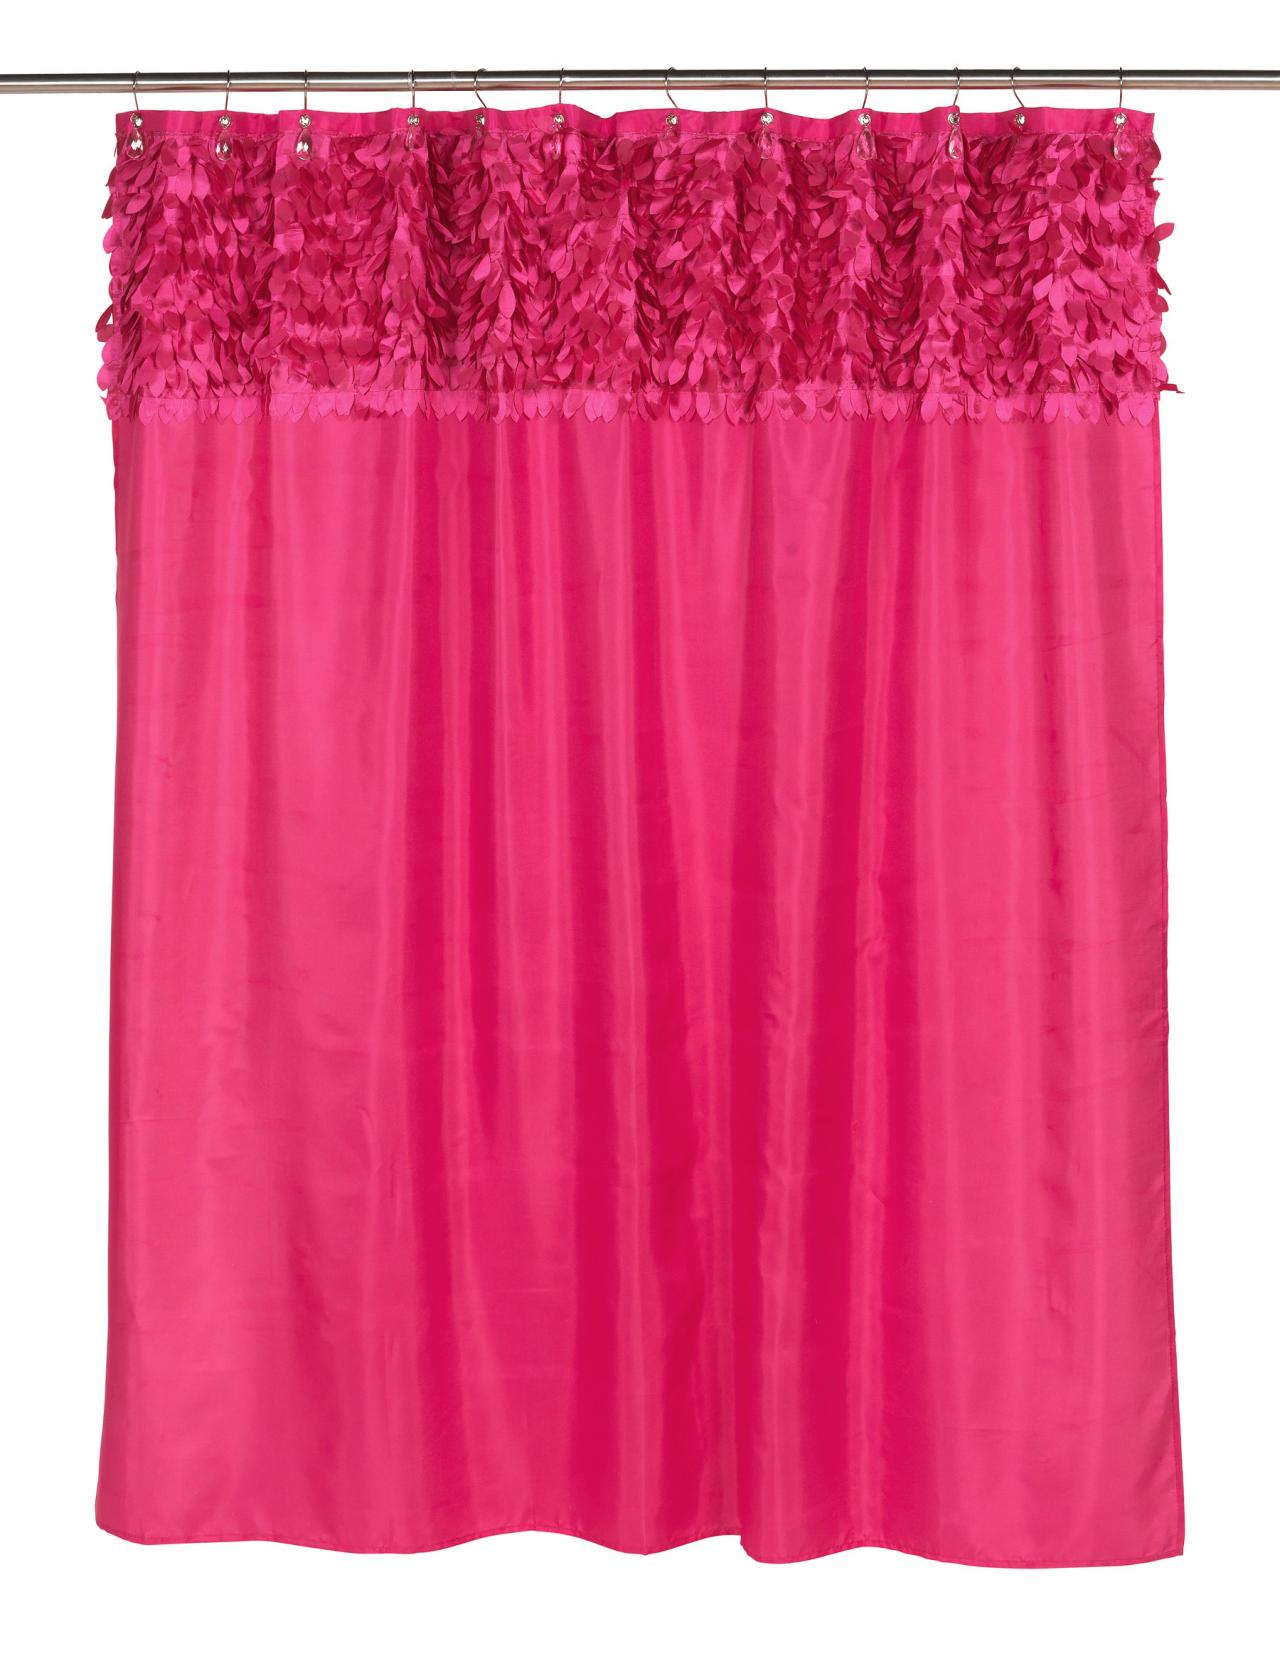 Carnation Home Fashions Inc Jasmine Fabric Shower Curtains